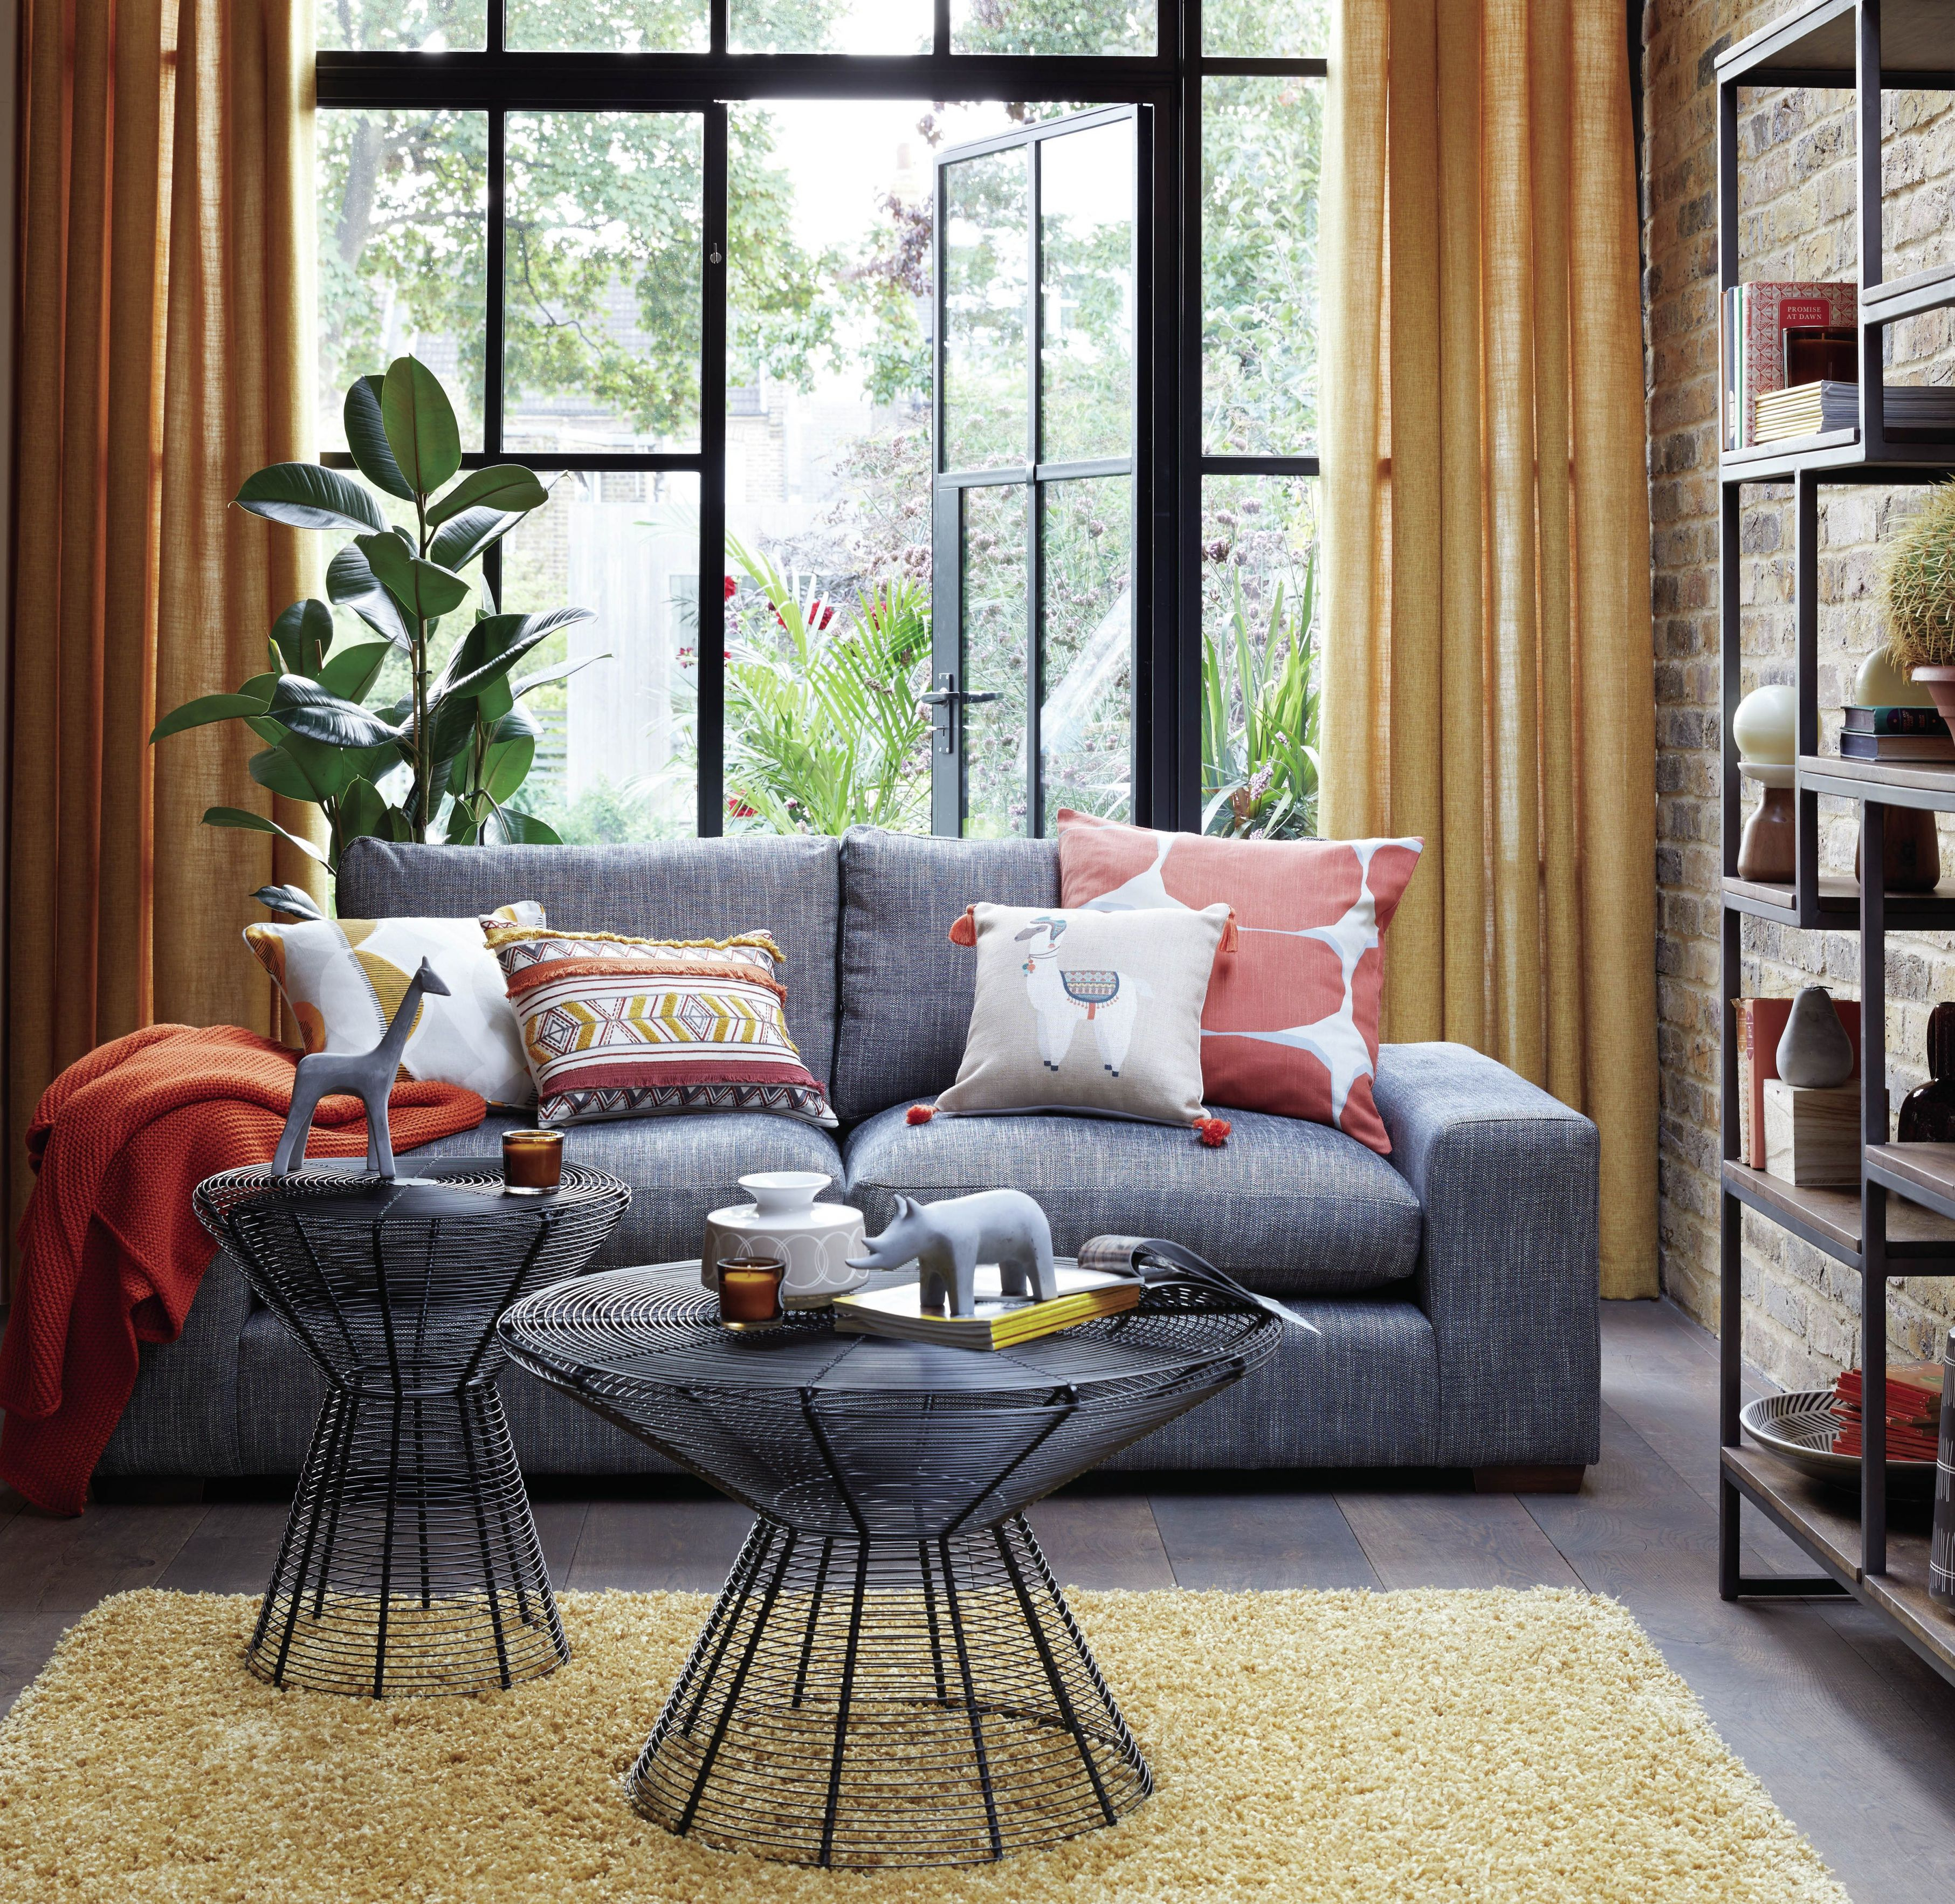 5 Design Tricks For Small Living Rooms Layout Ideas With